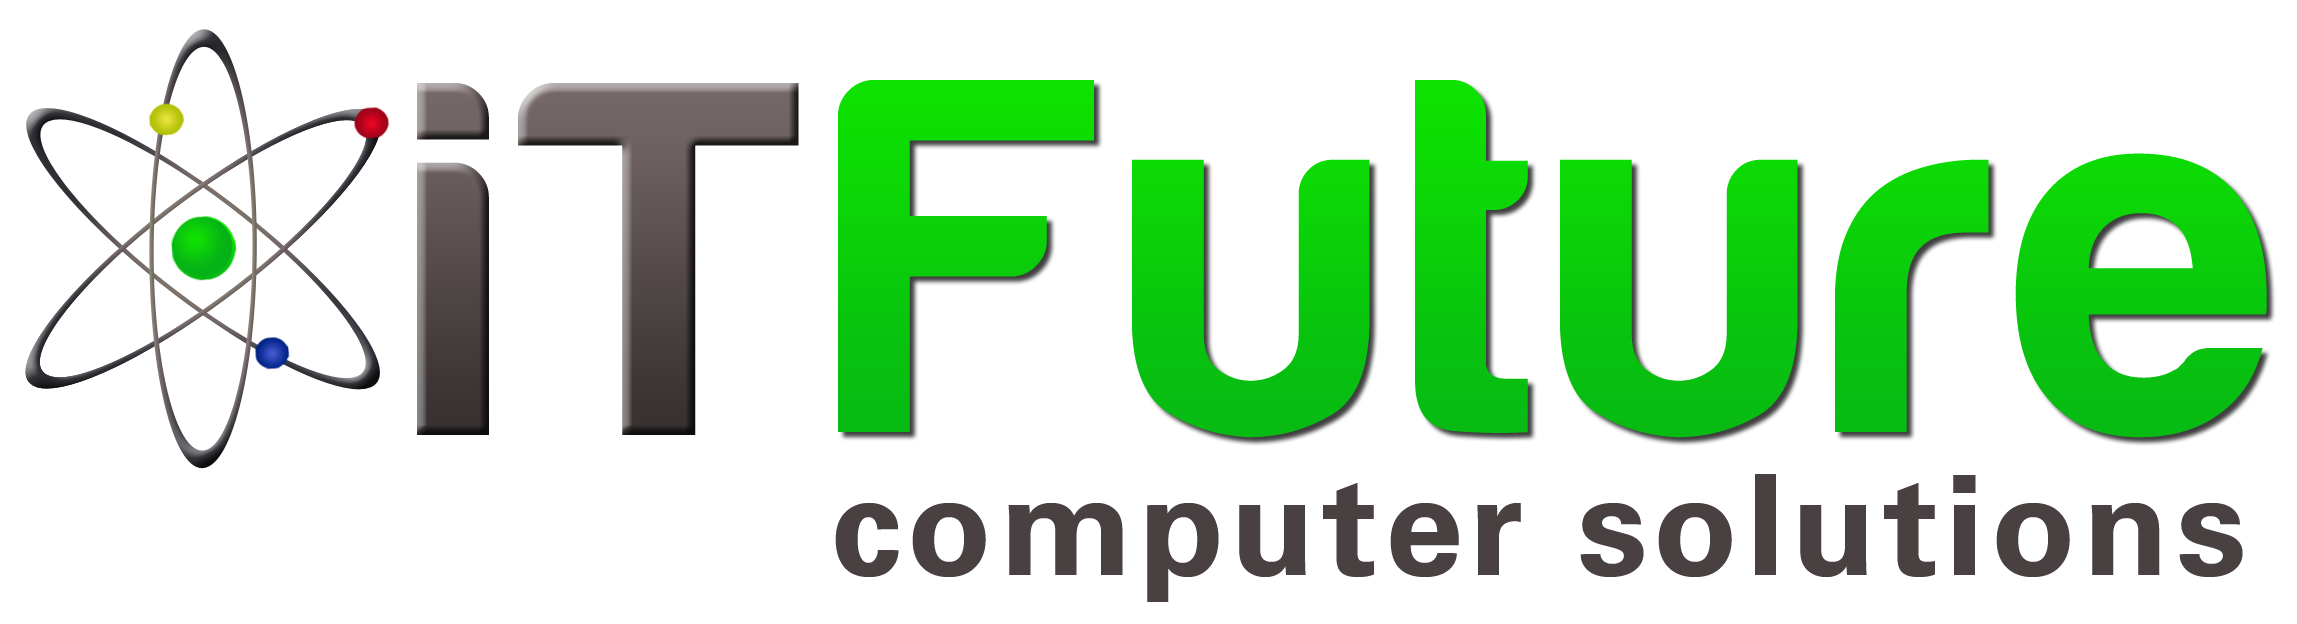 iTFuture Computer Solutions